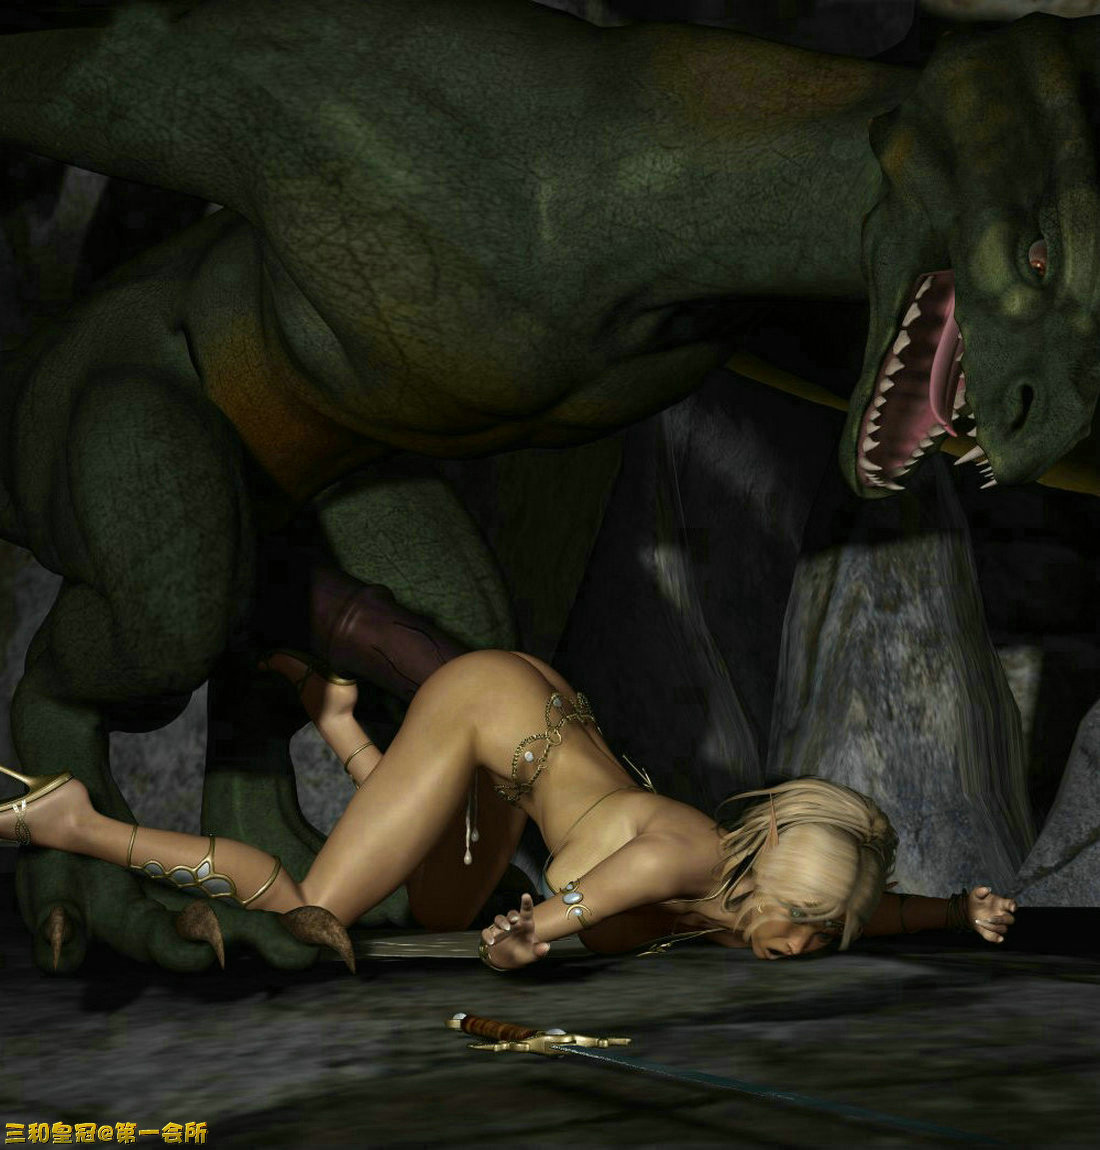 Dragon monster sex porn pictures